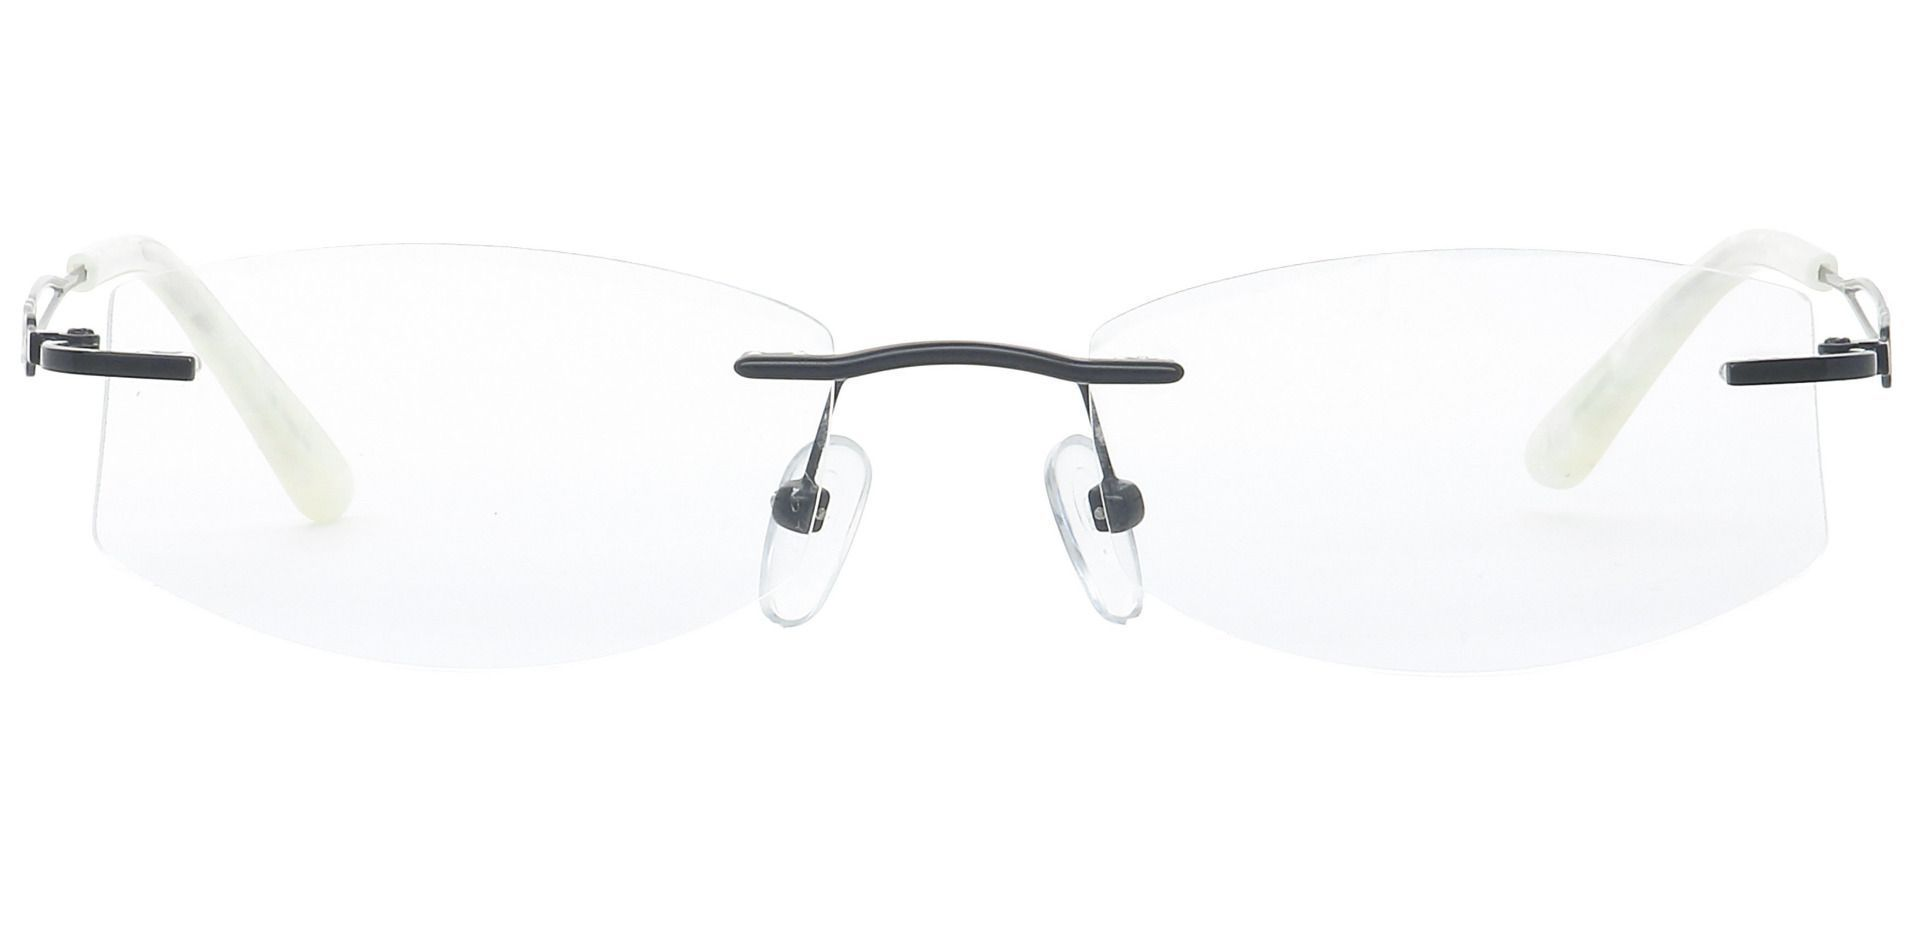 Jada Rimless Progressive Glasses - Black